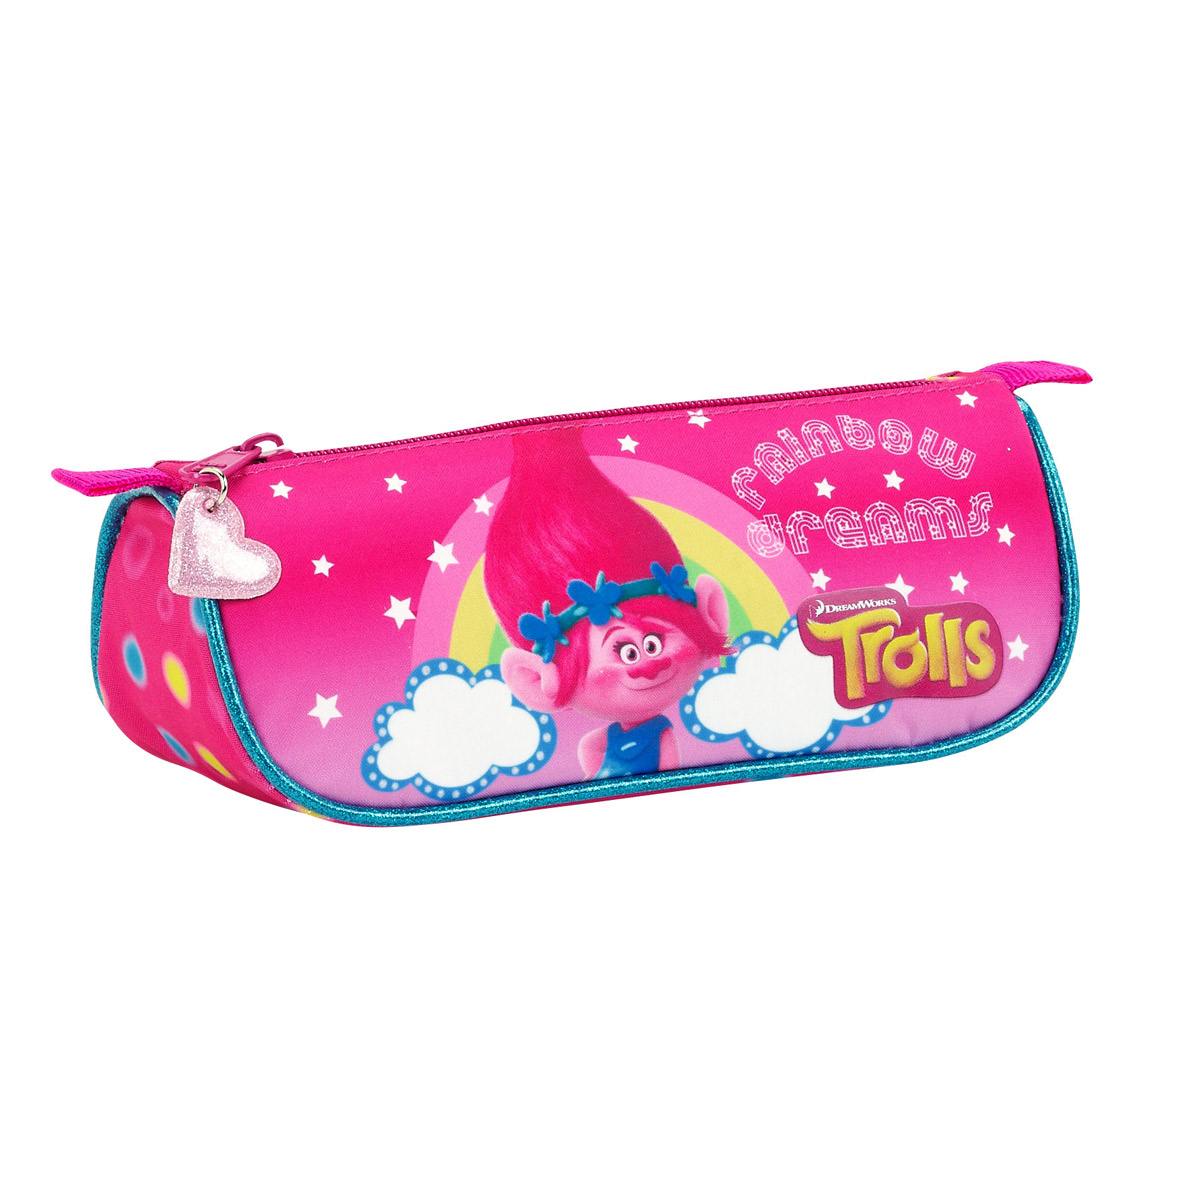 Triangular pencil case Trolls